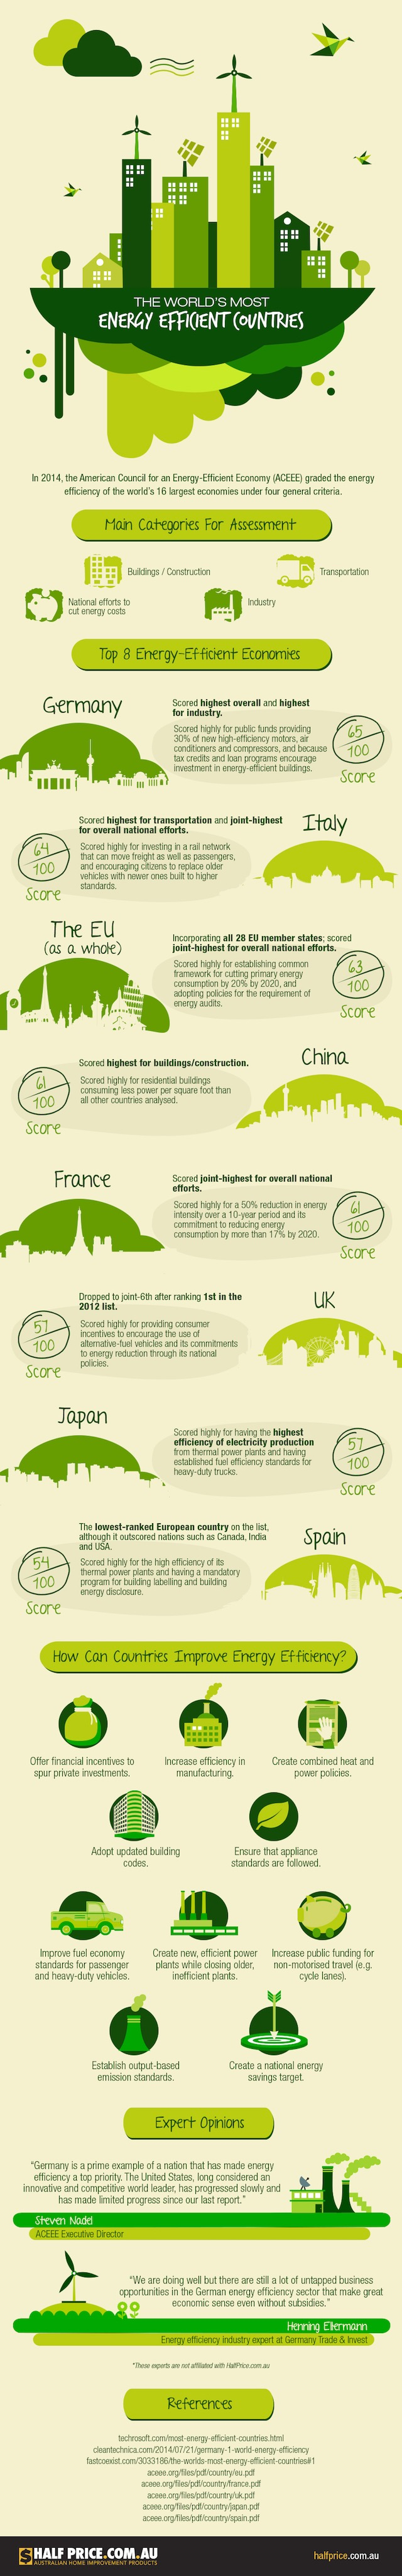 Infographic of the world's most energy efficient countries